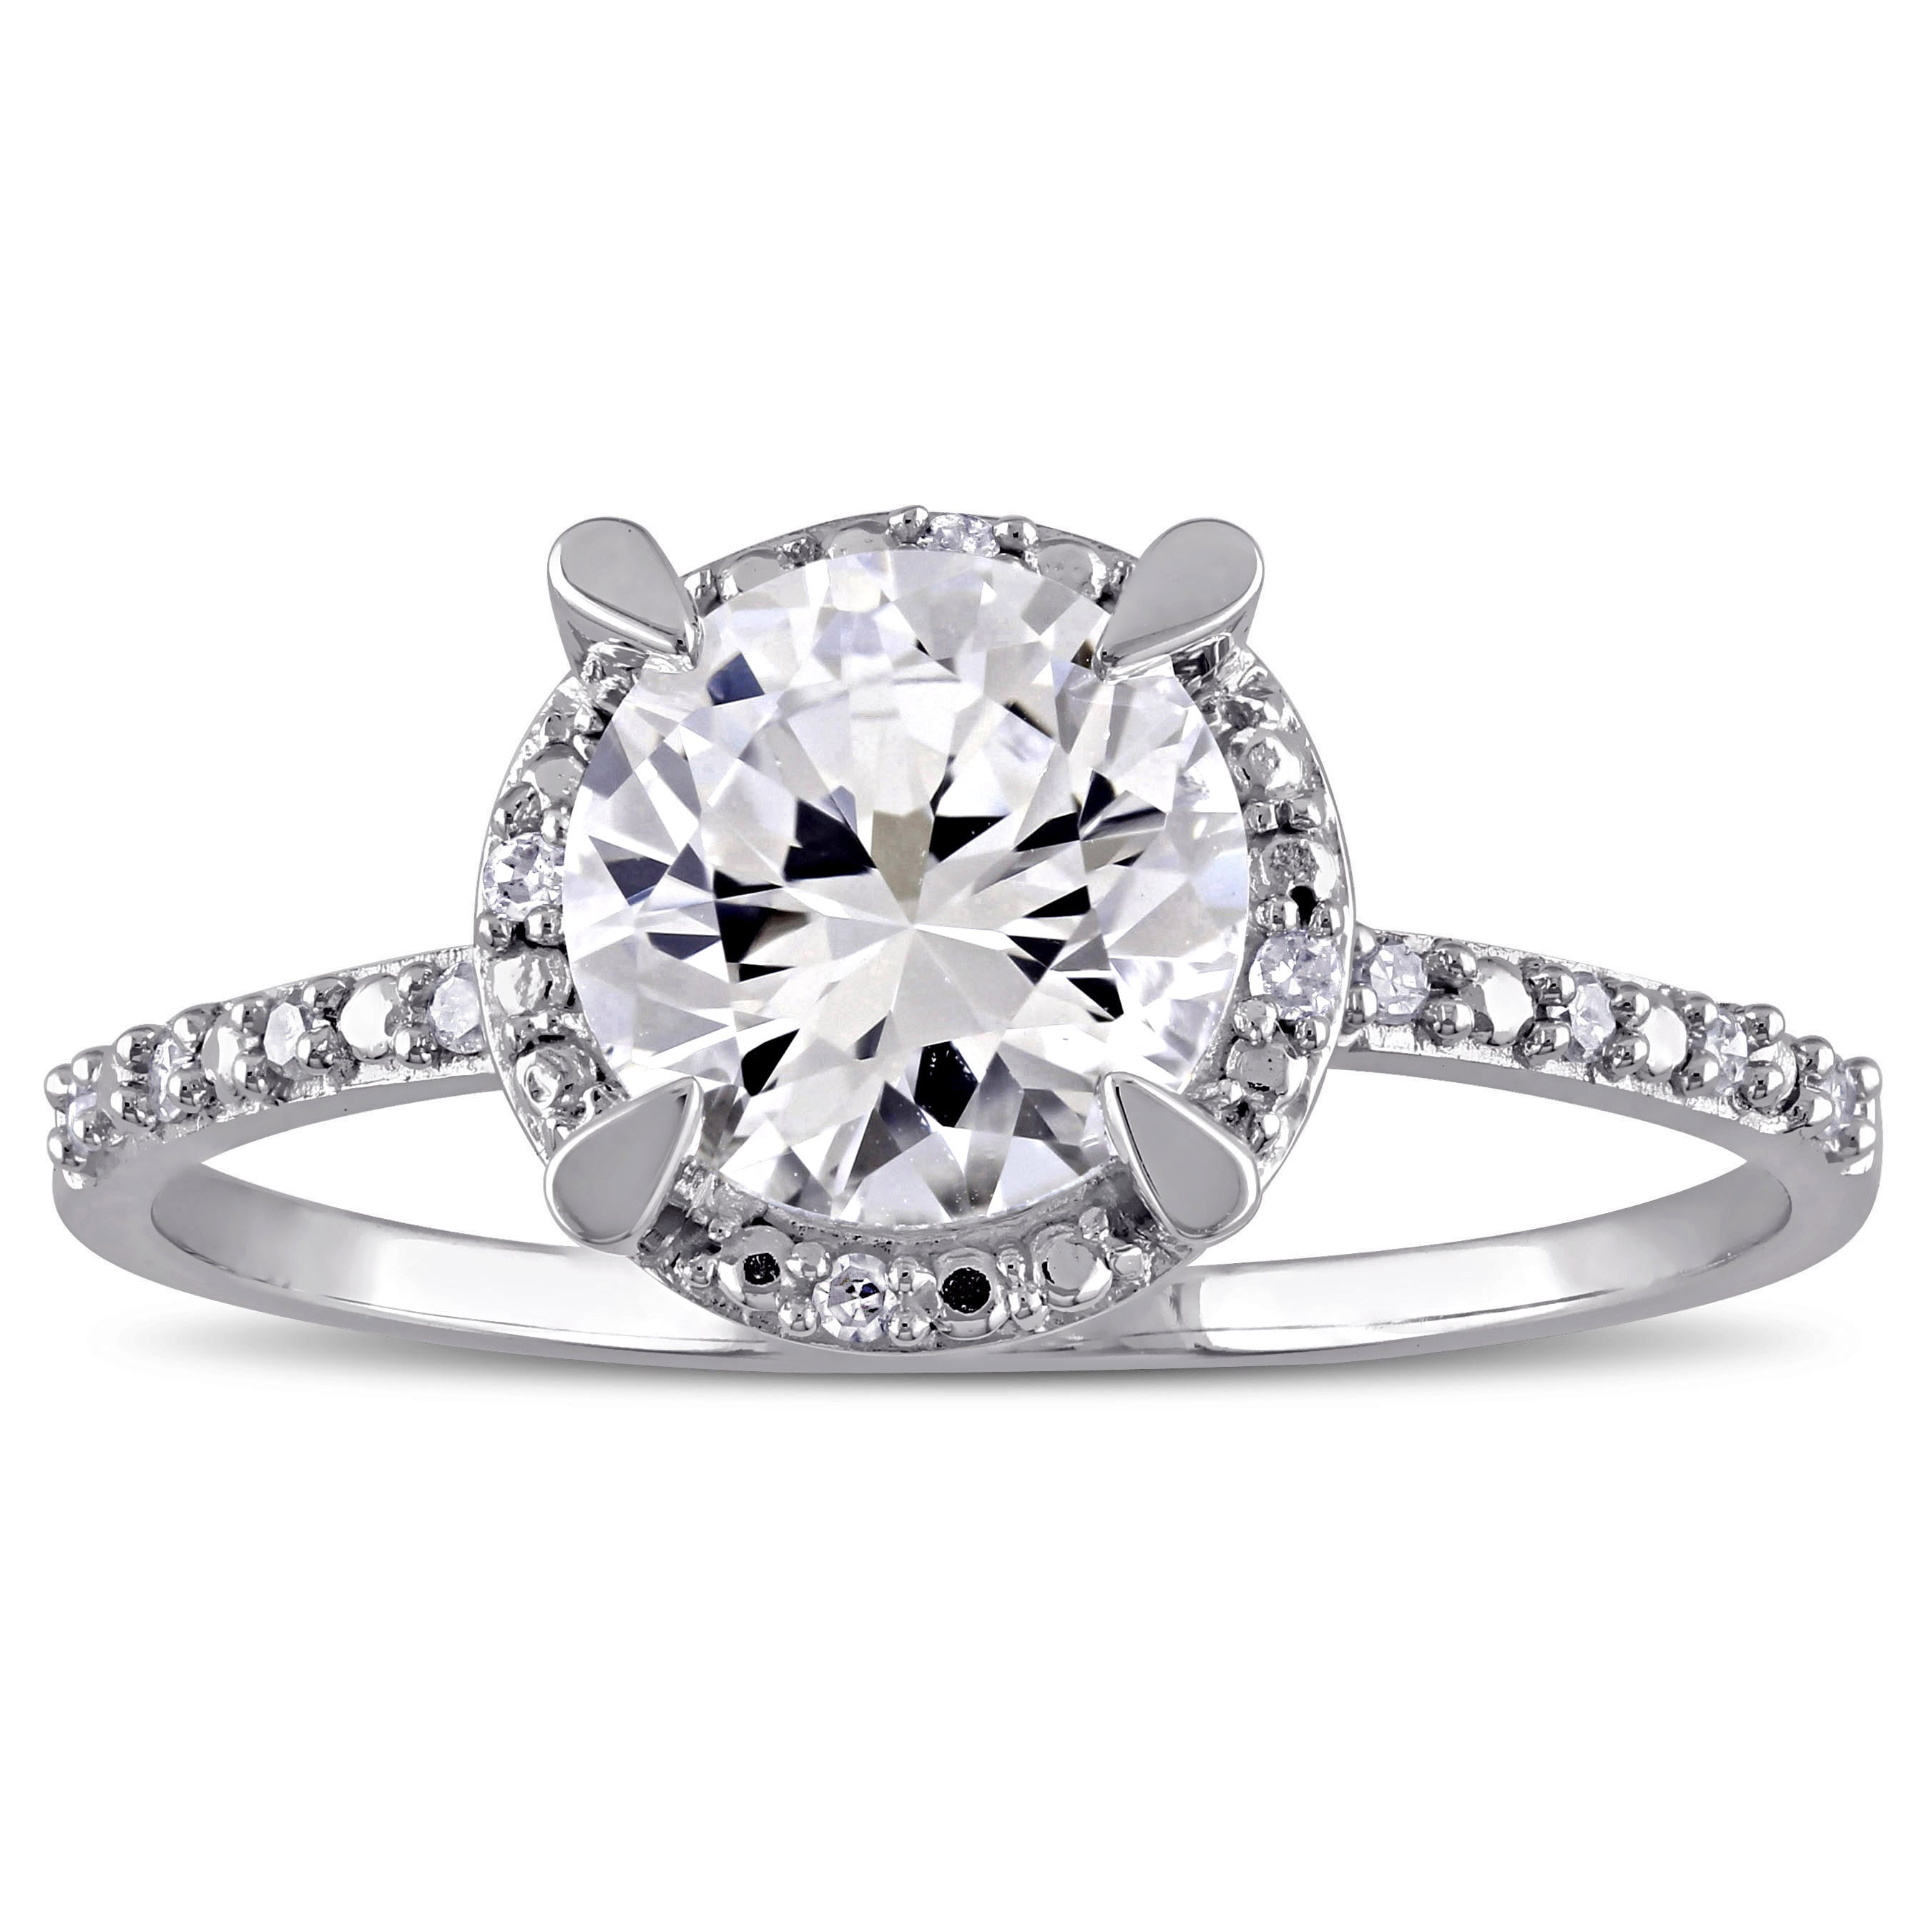 products ring silver diamond white created sapphire wedding sterling round sparkling set cut